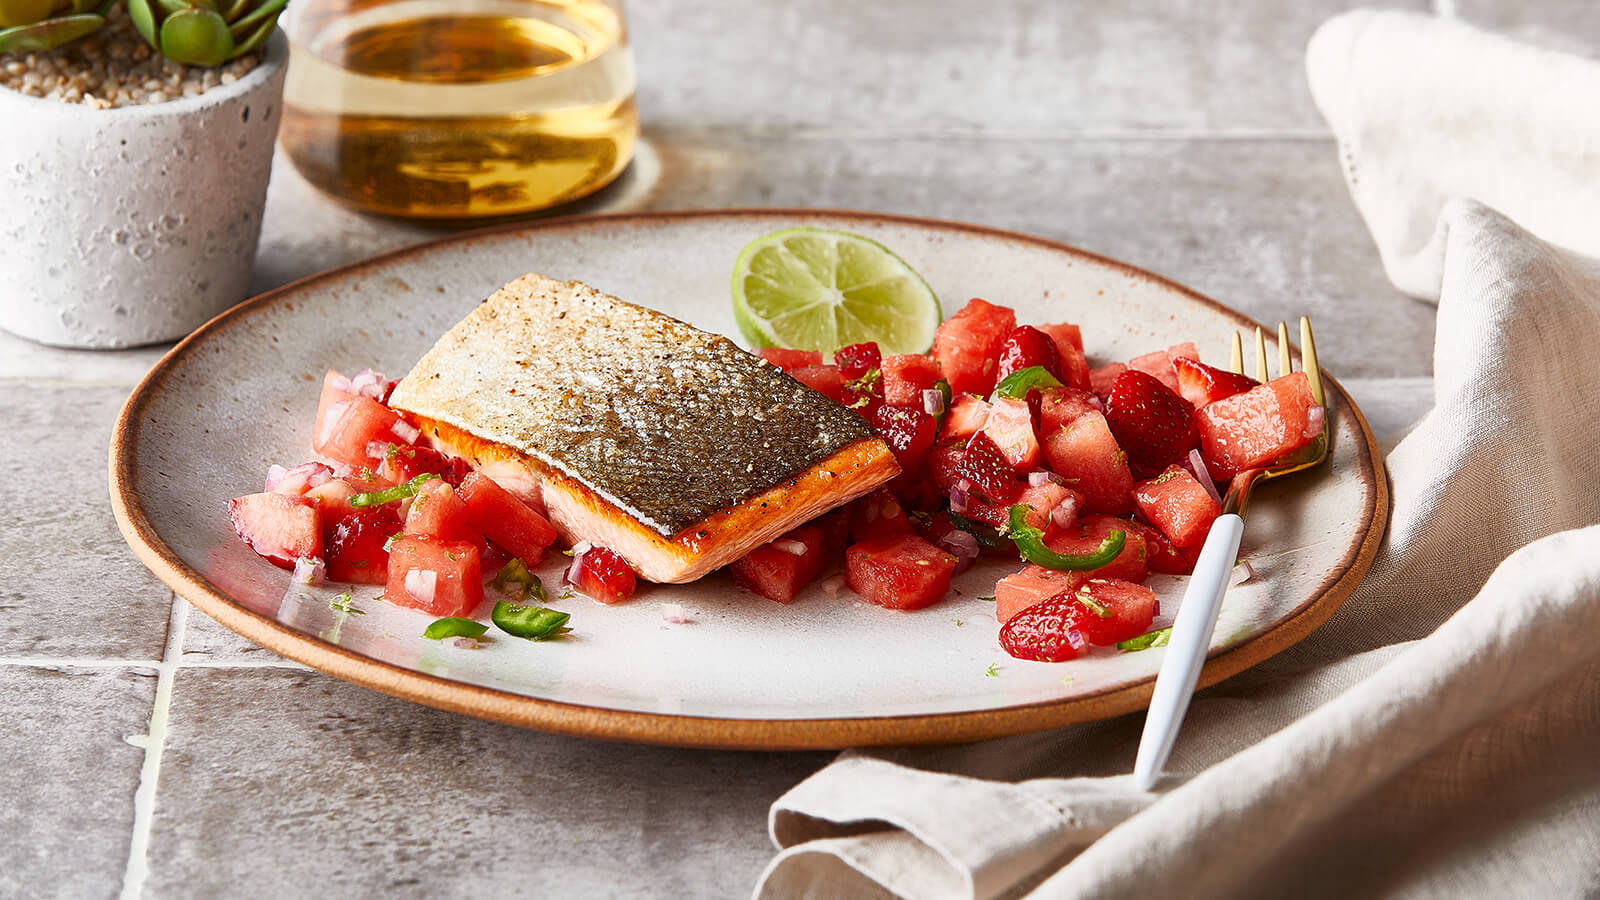 Crispy Skin Salmon with Spicy Watermelon and Berry Salsa